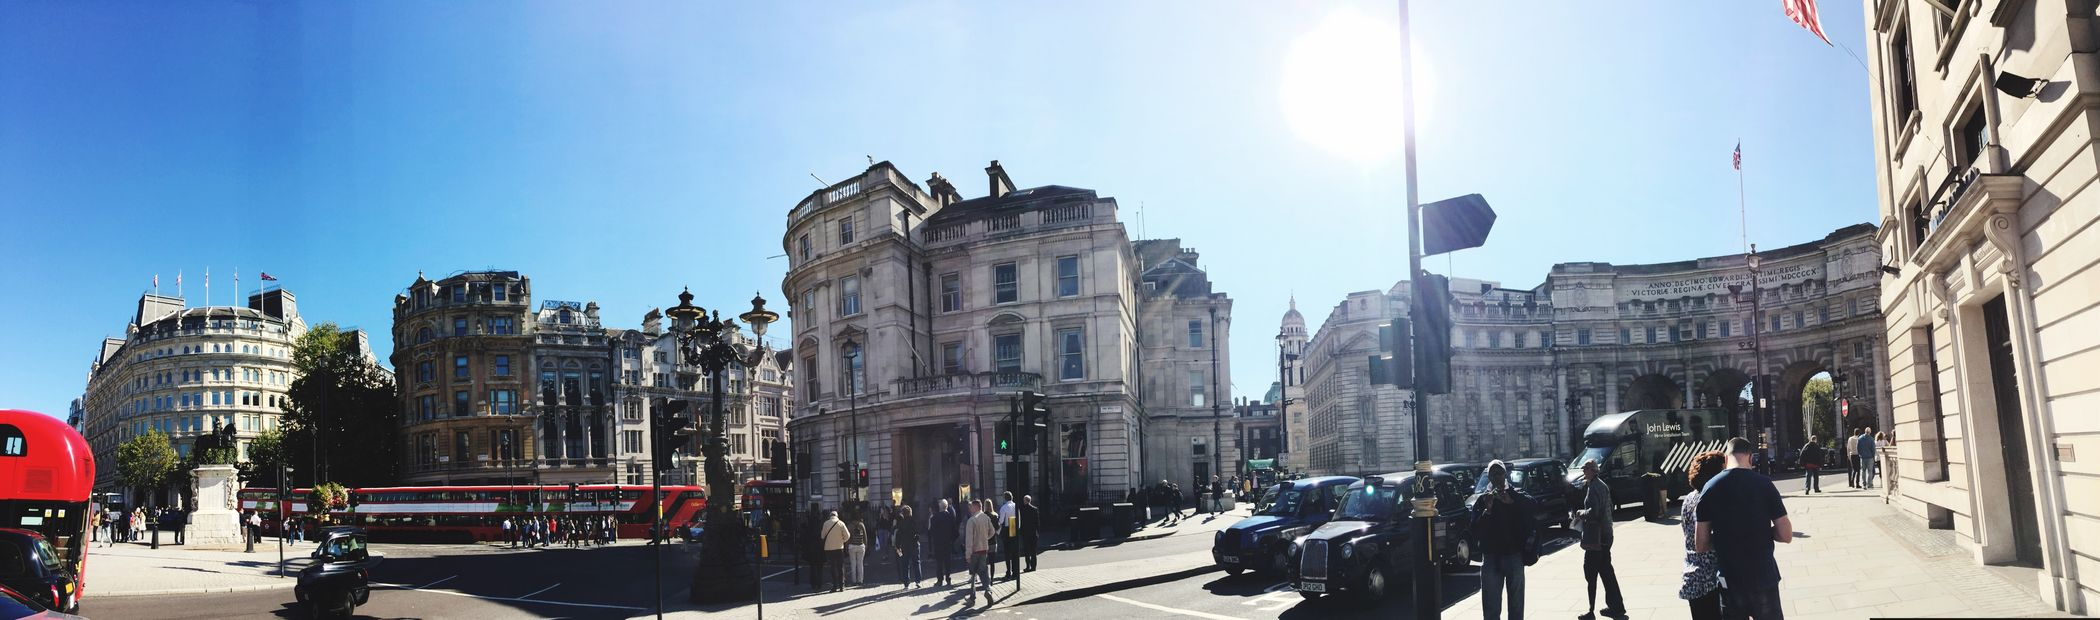 The square in London England